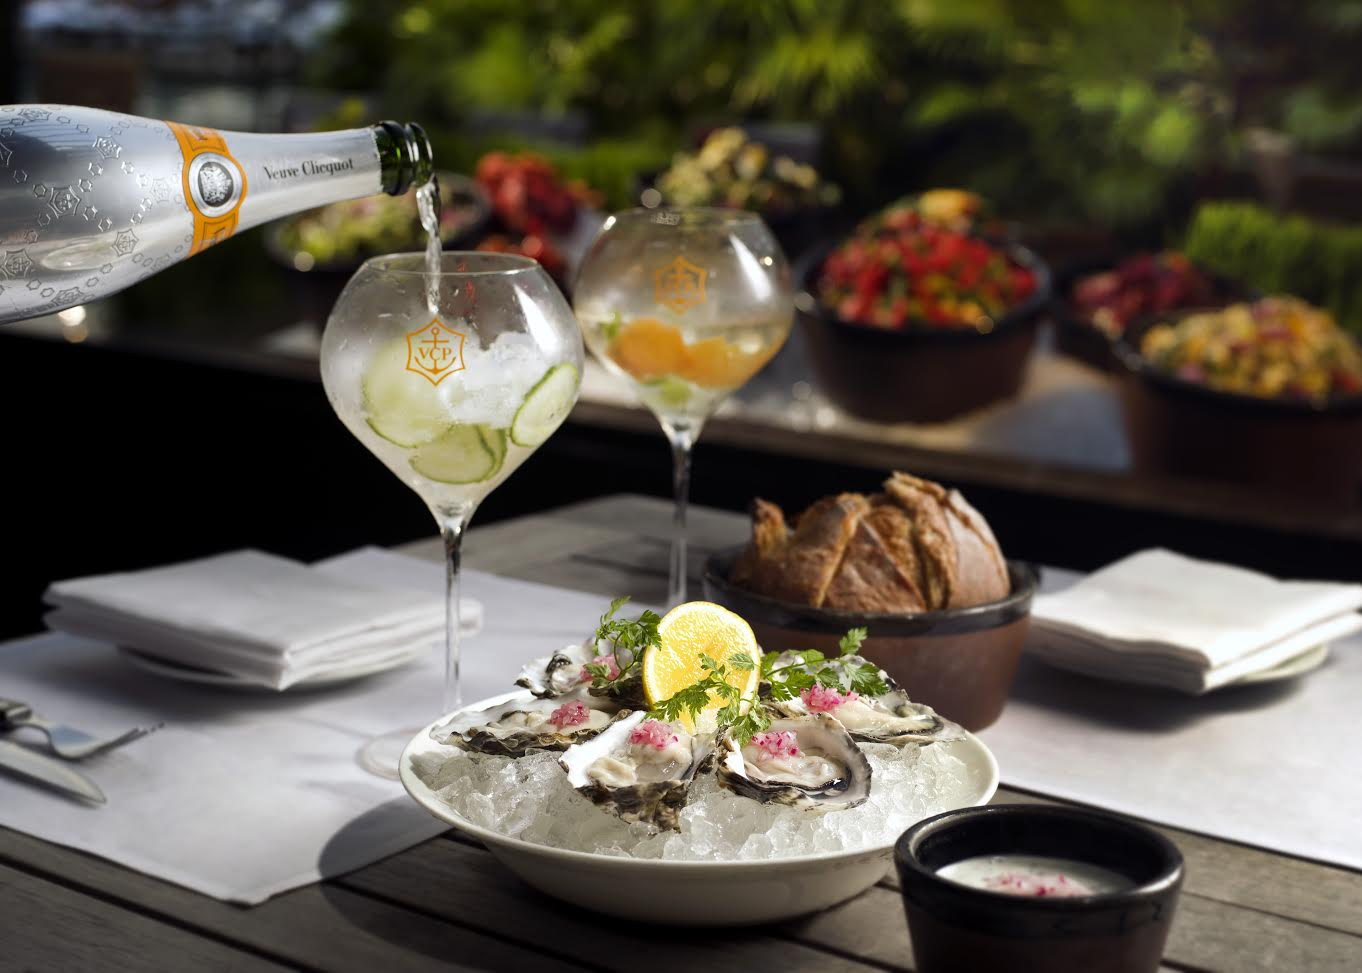 Savour a poolside barbecue dinner with Veuve Clicquot Rich